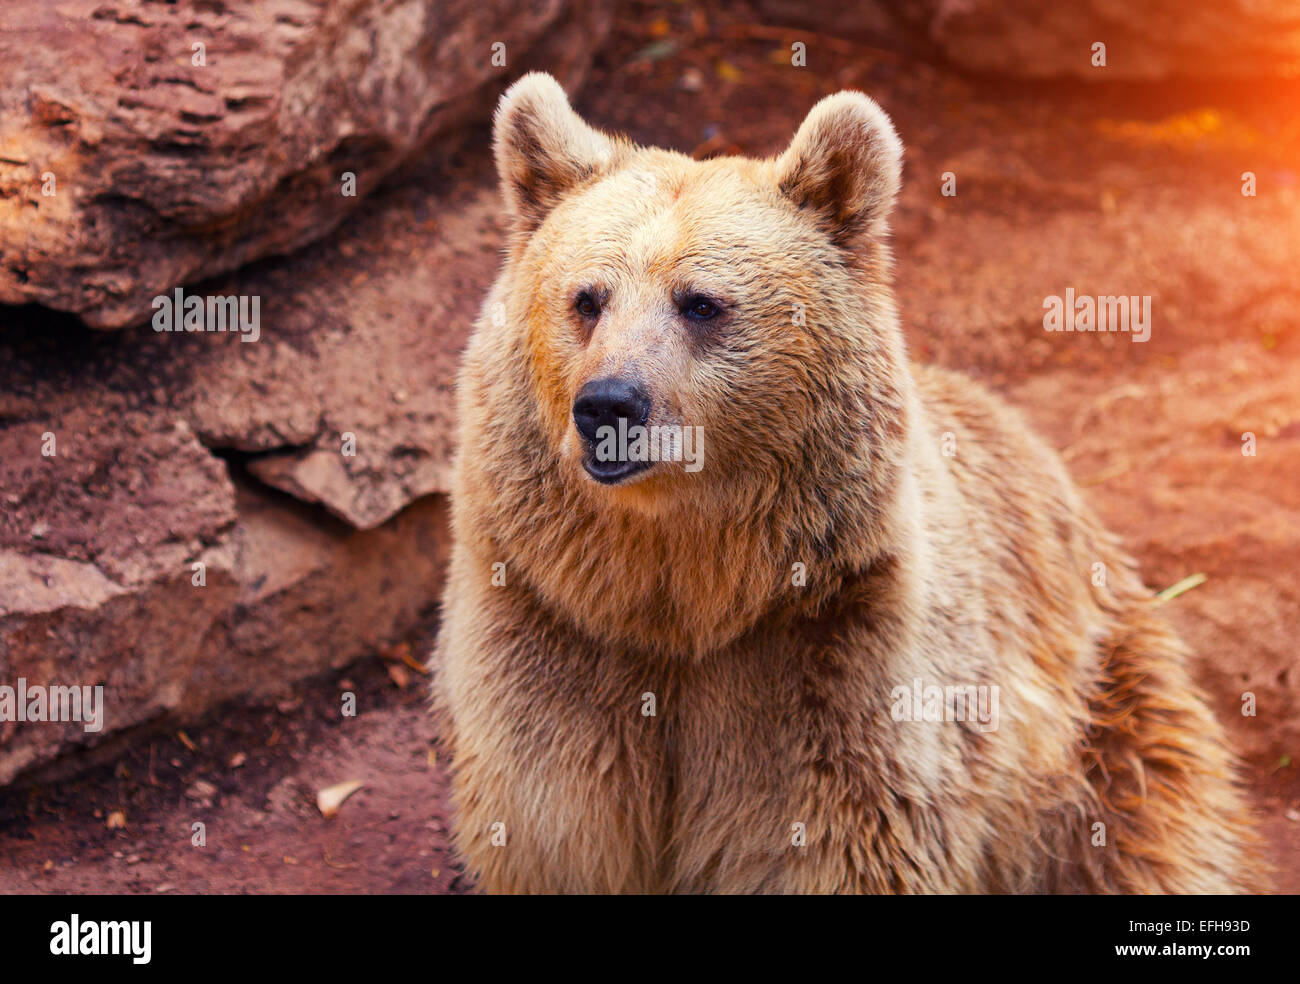 Far Eastern wild bear walk near rock - Stock Image